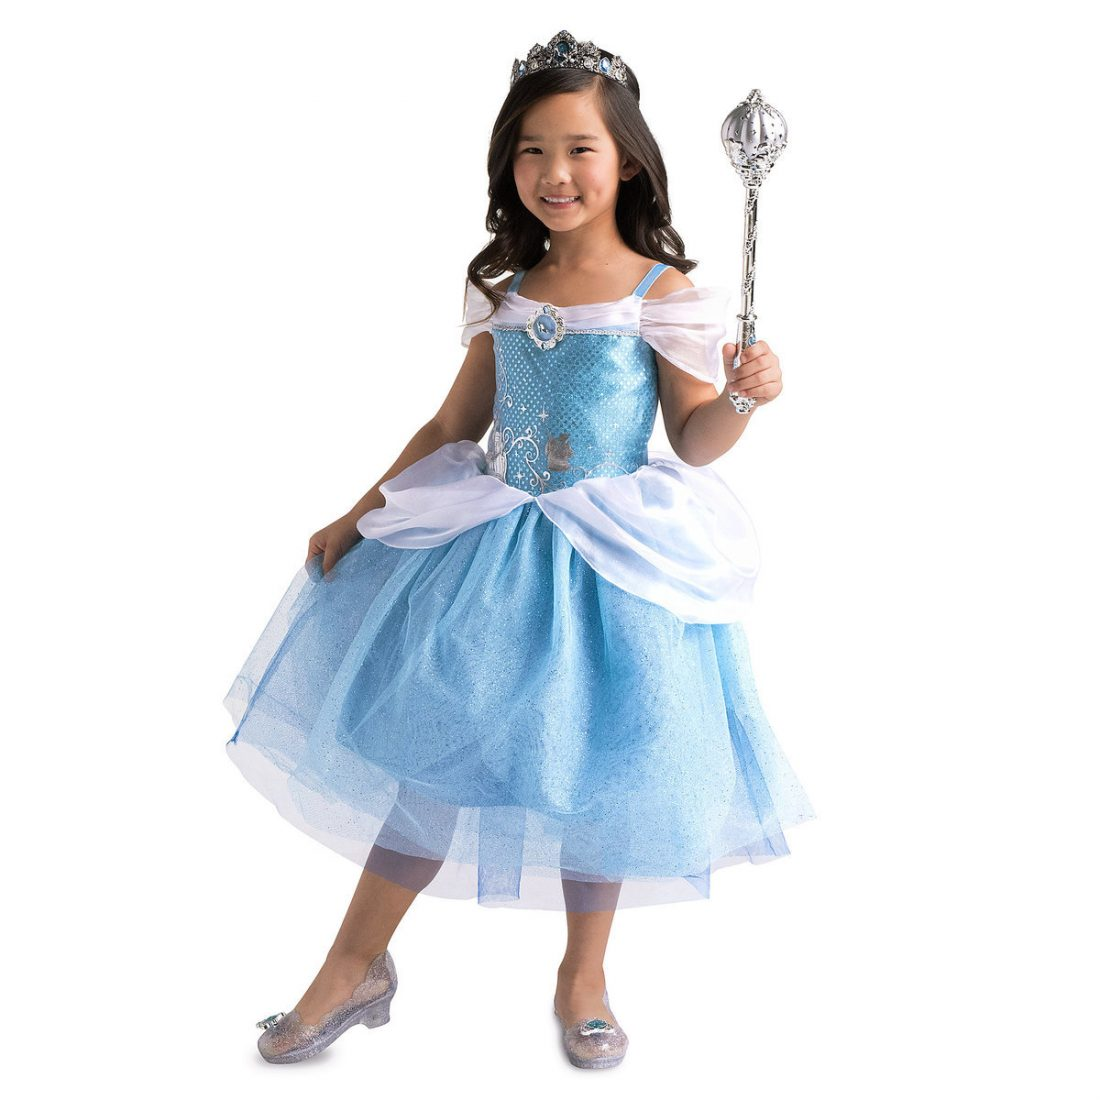 c32a5dba641 8 Best Disney Character Costumes for Kids | Bragging Mommy